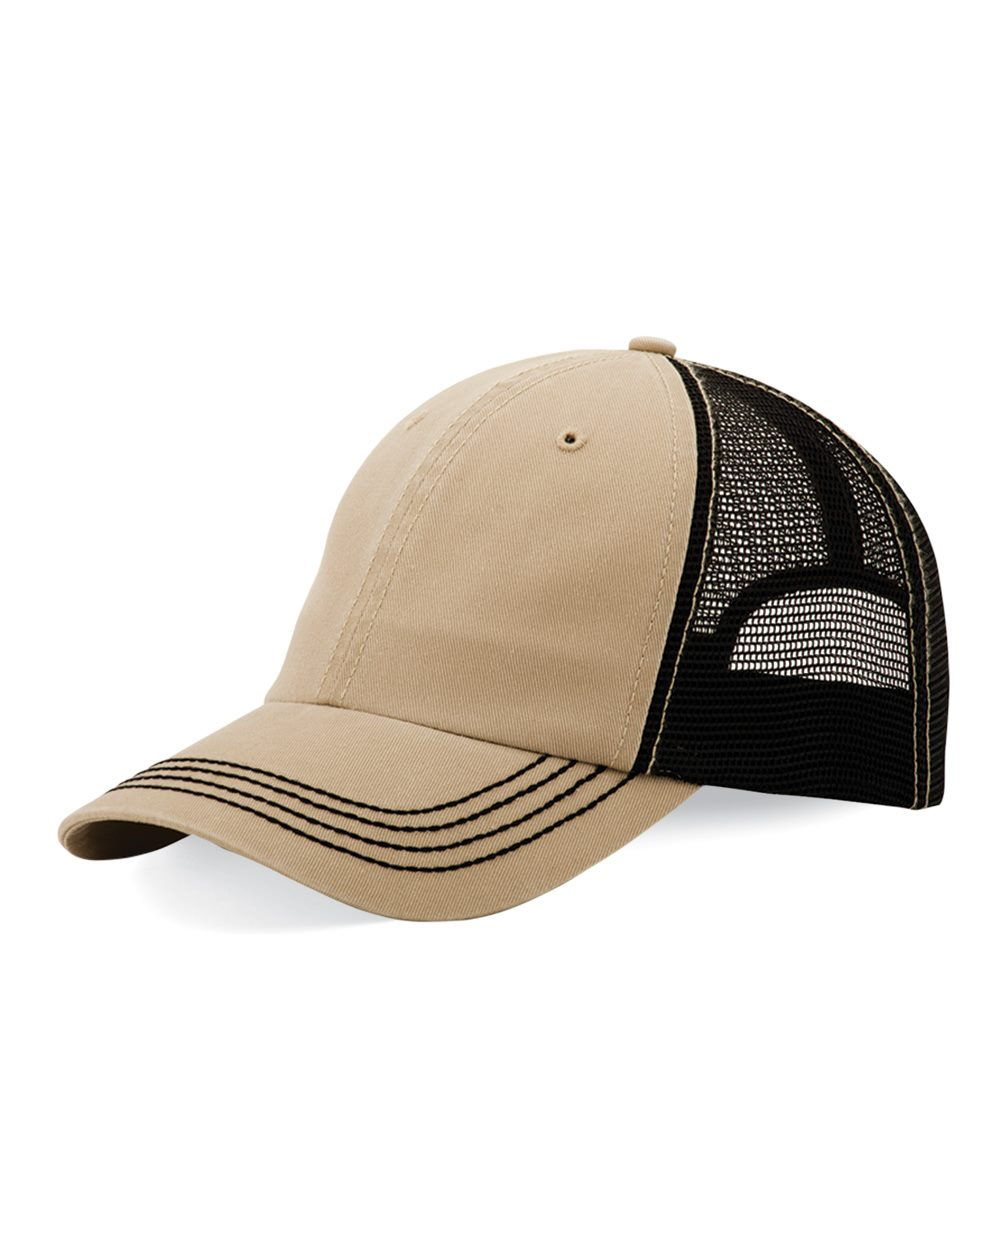 Mega Cap 6894 - Washed Twill Trucker Cap